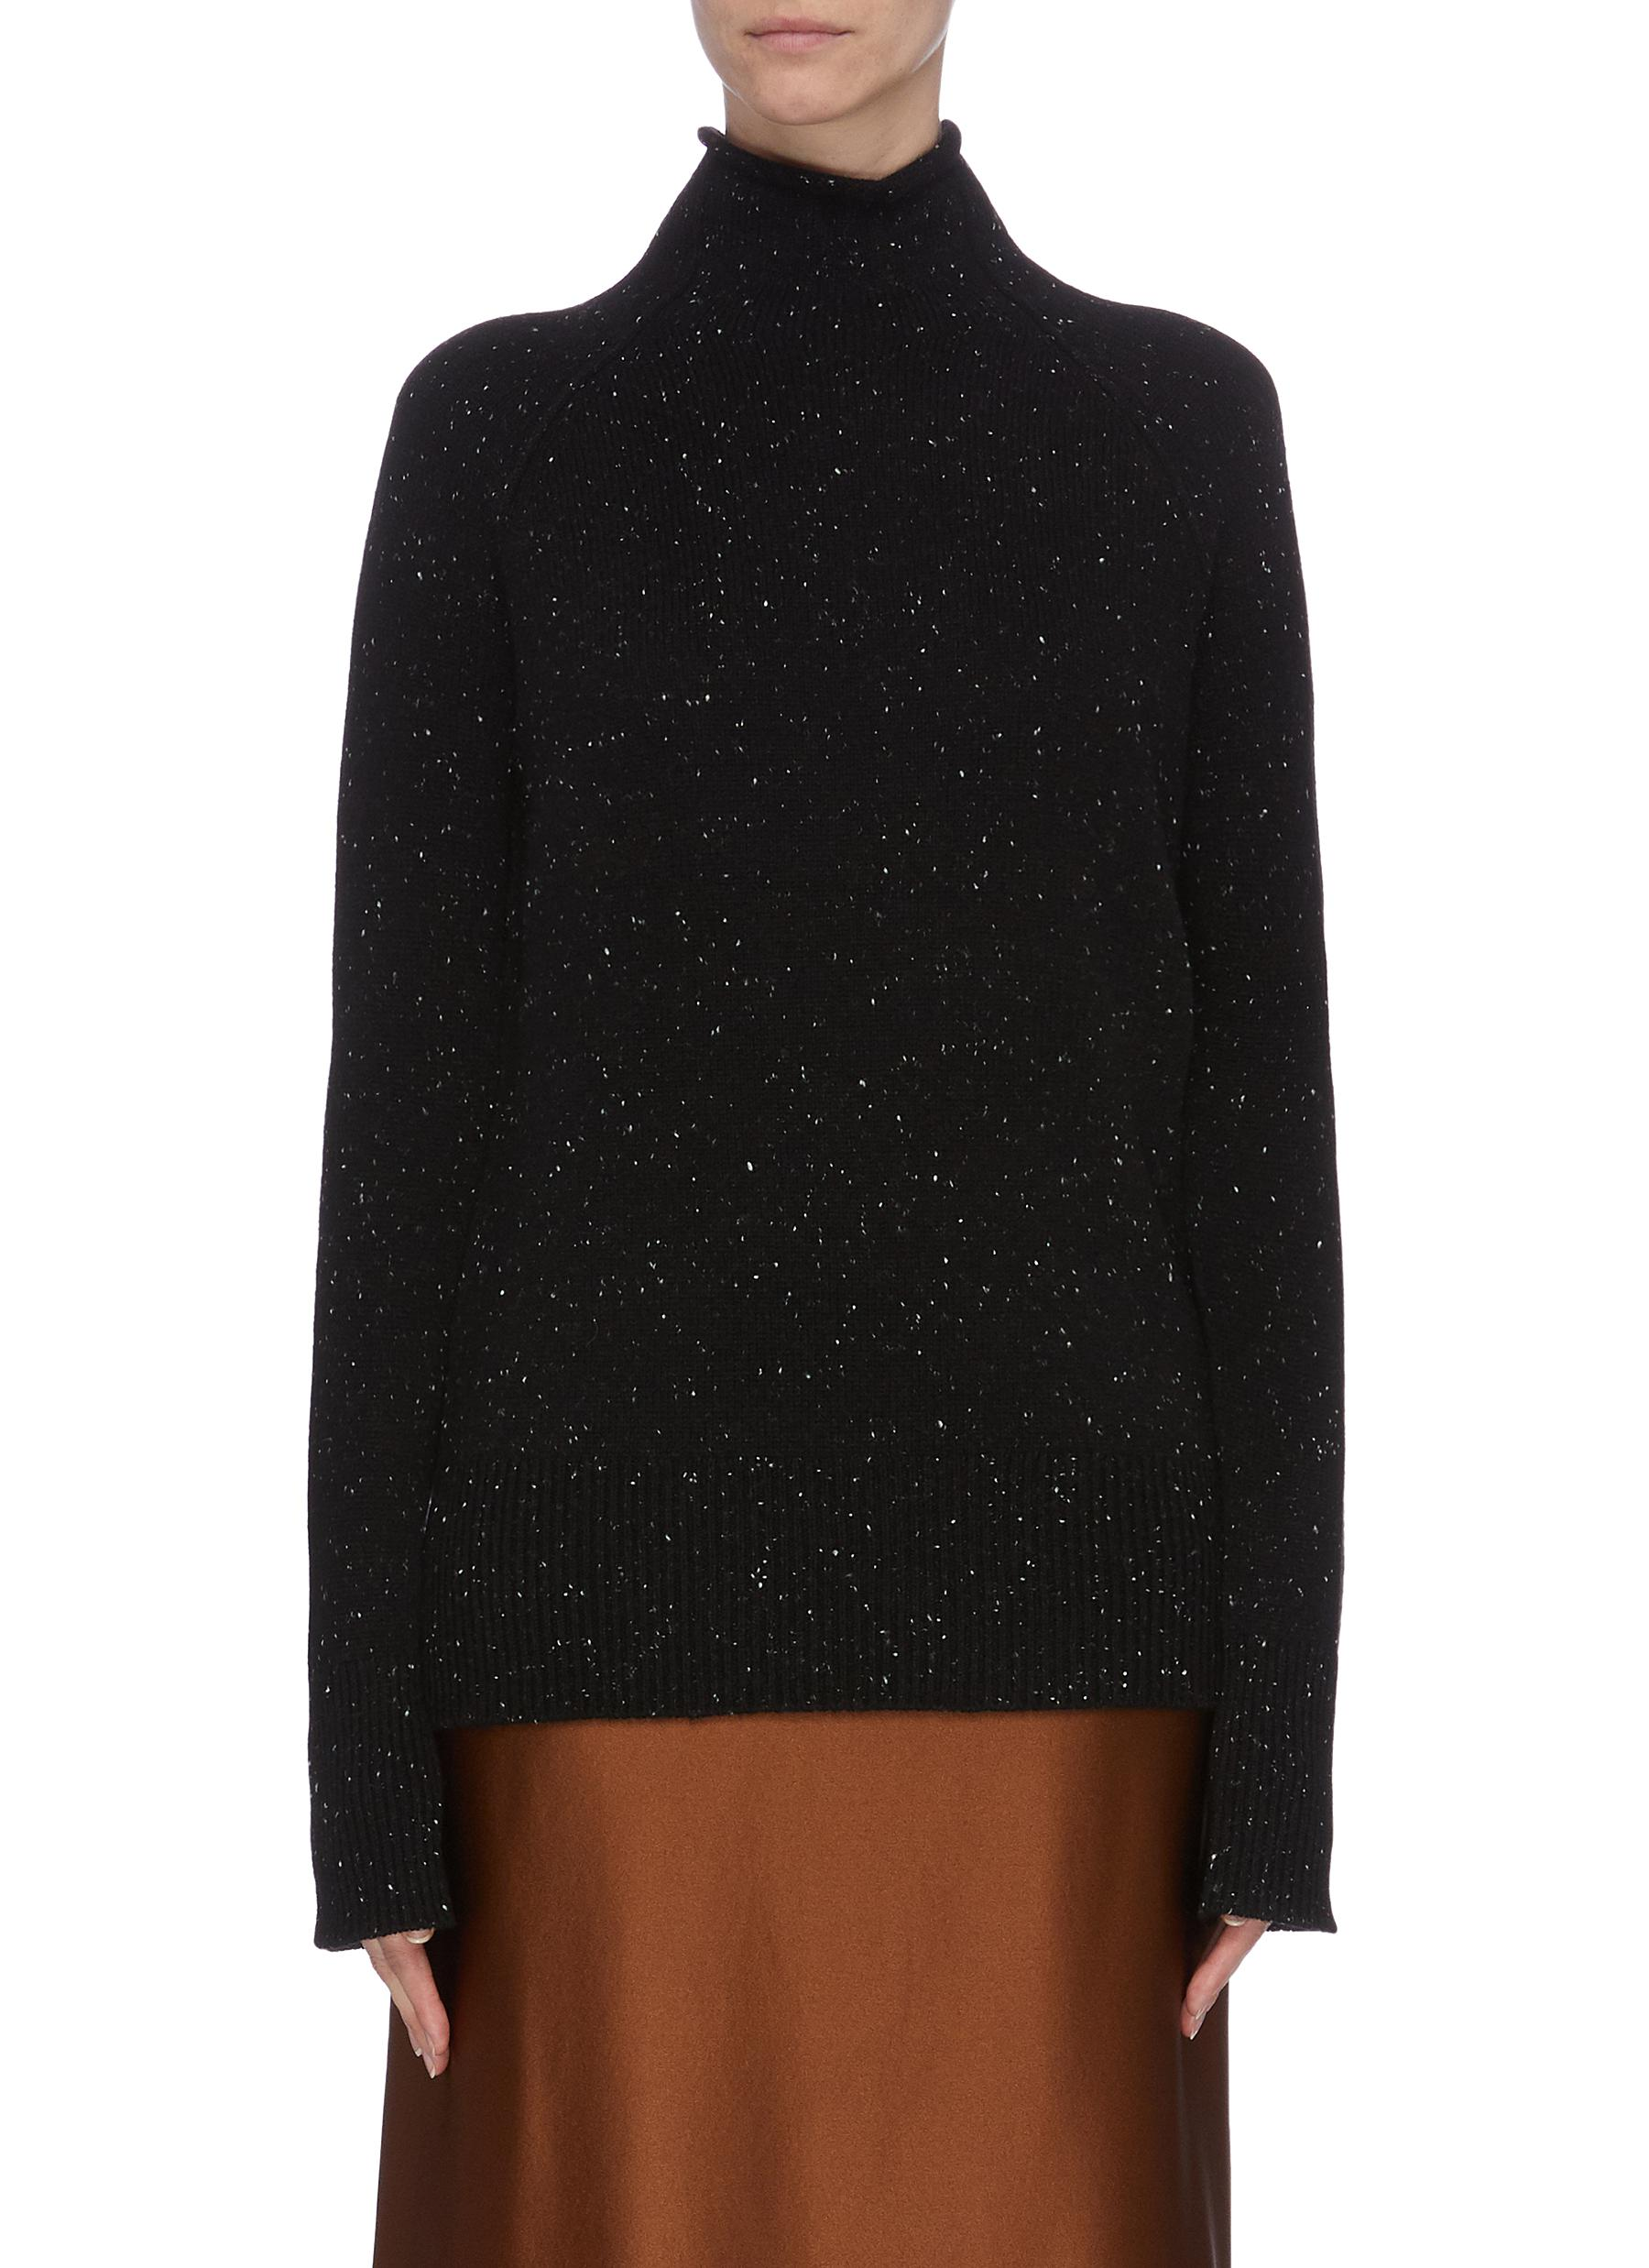 Karinella speckled turtleneck sweater by Theory